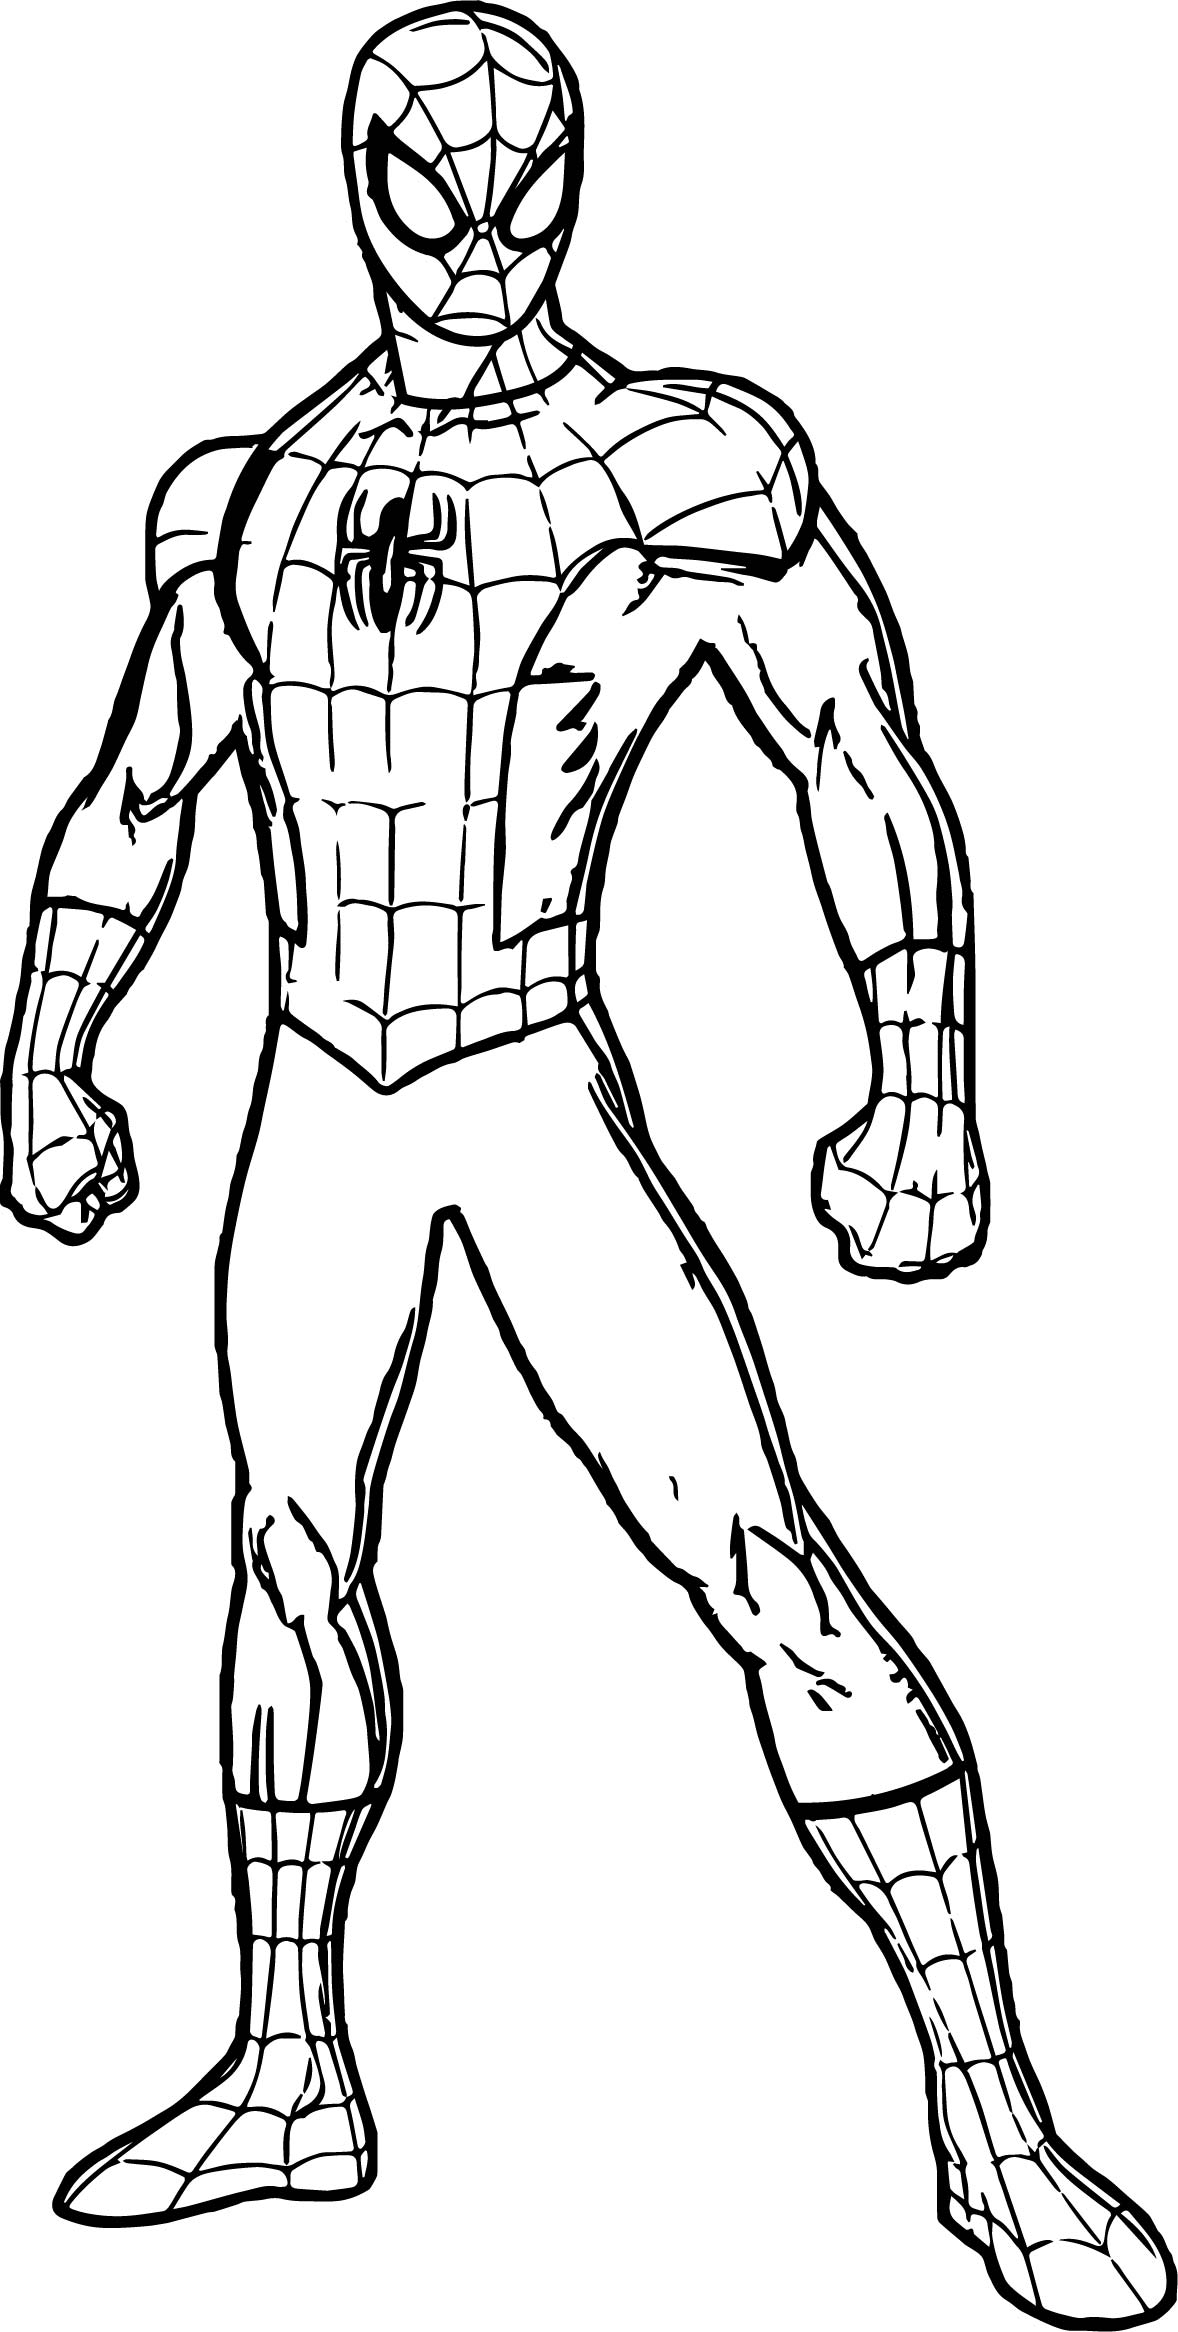 Spidey spider man coloring page for Spiderman coloring book pages